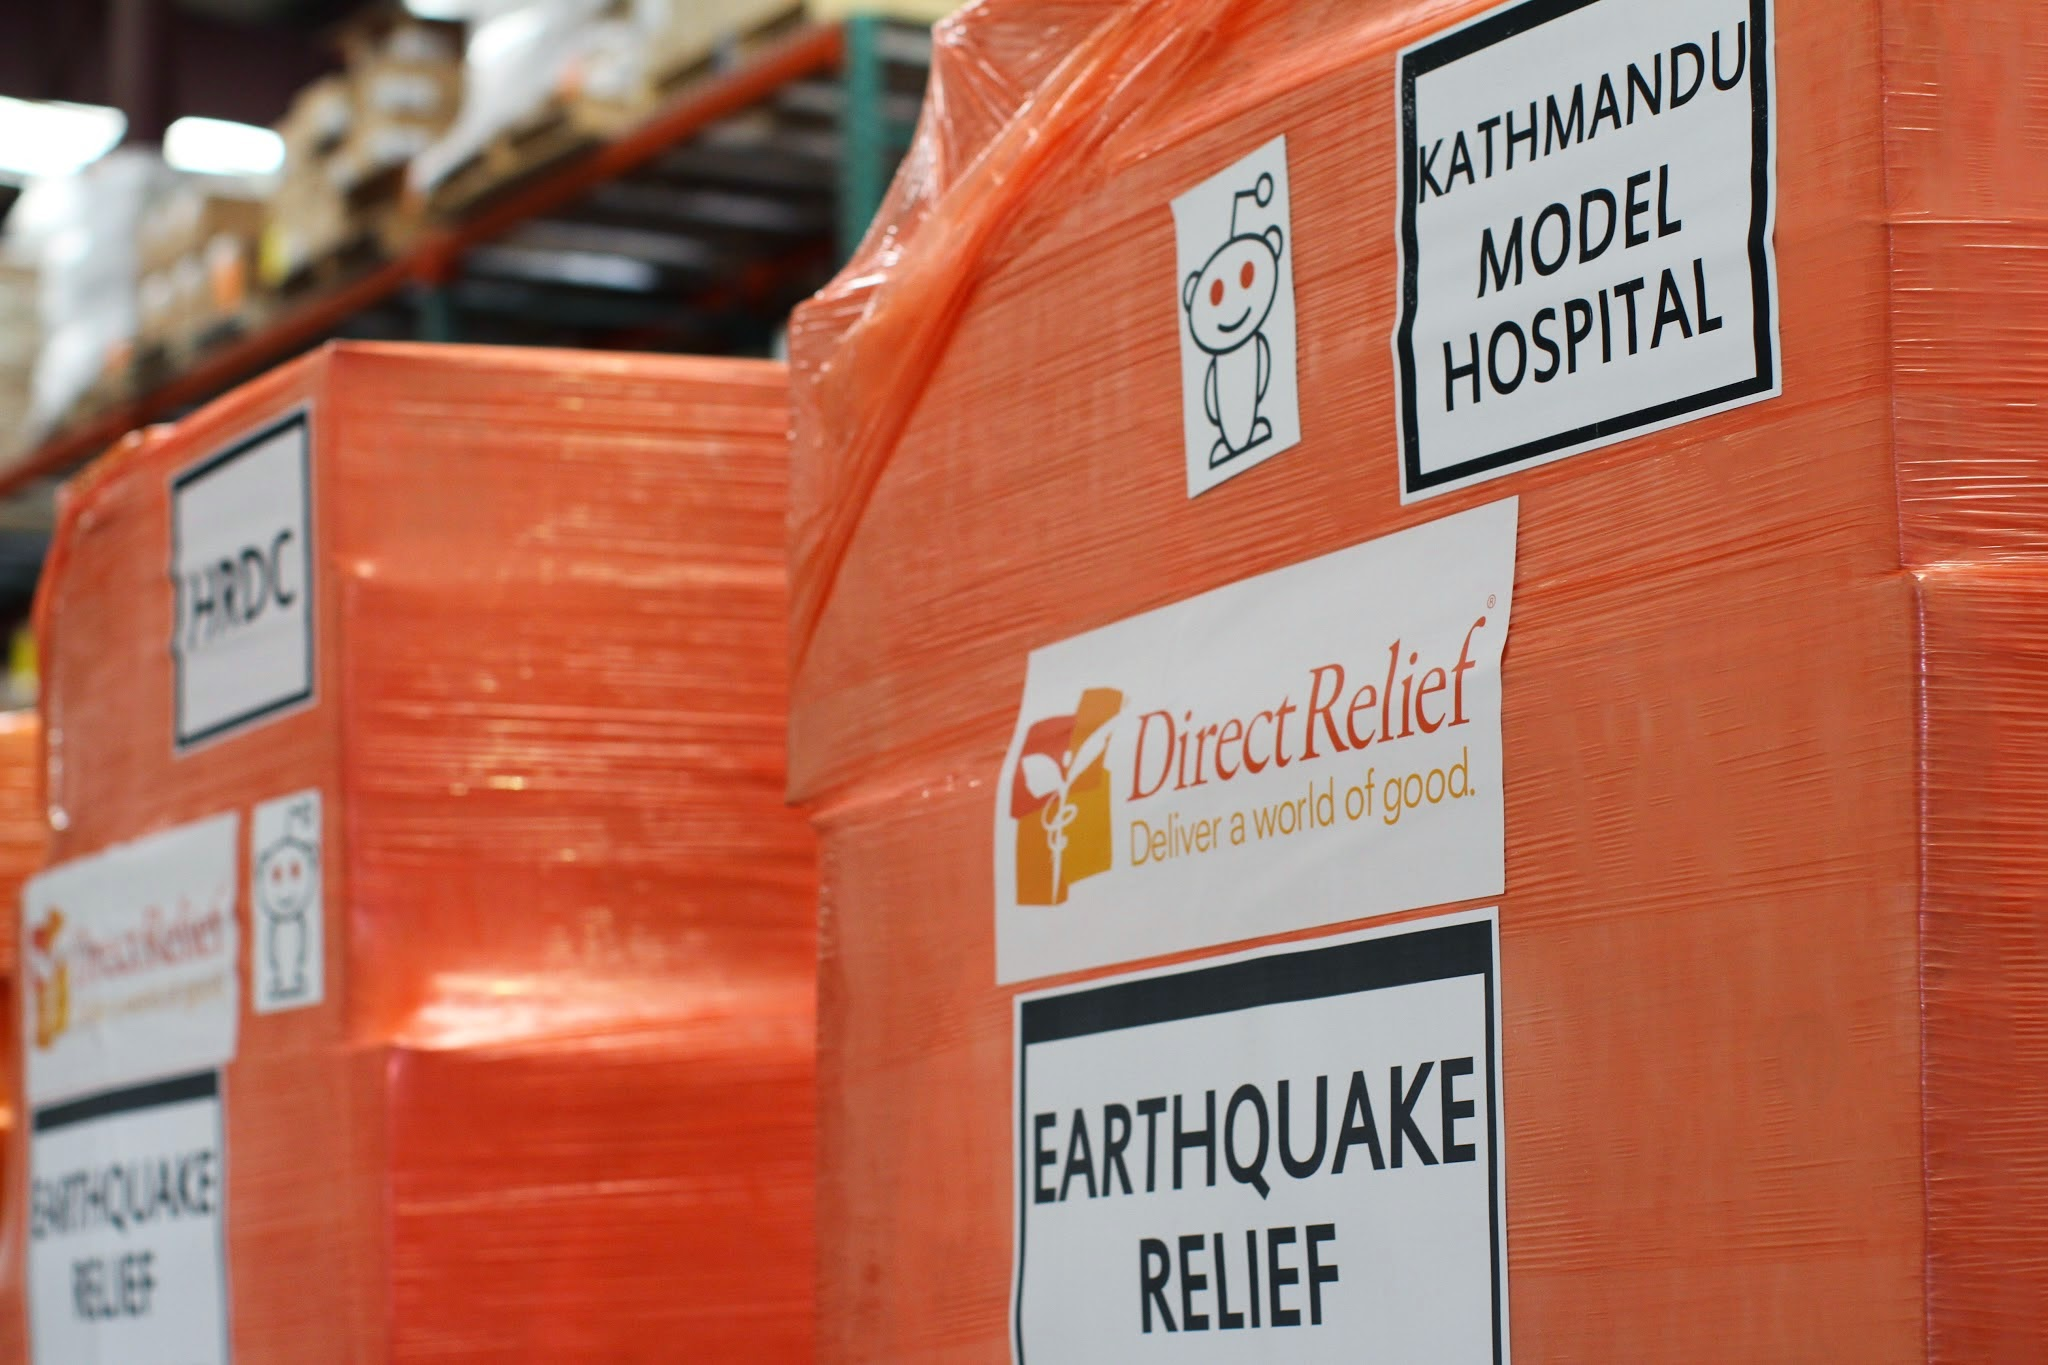 nepal earthquake 2015 | direct relief